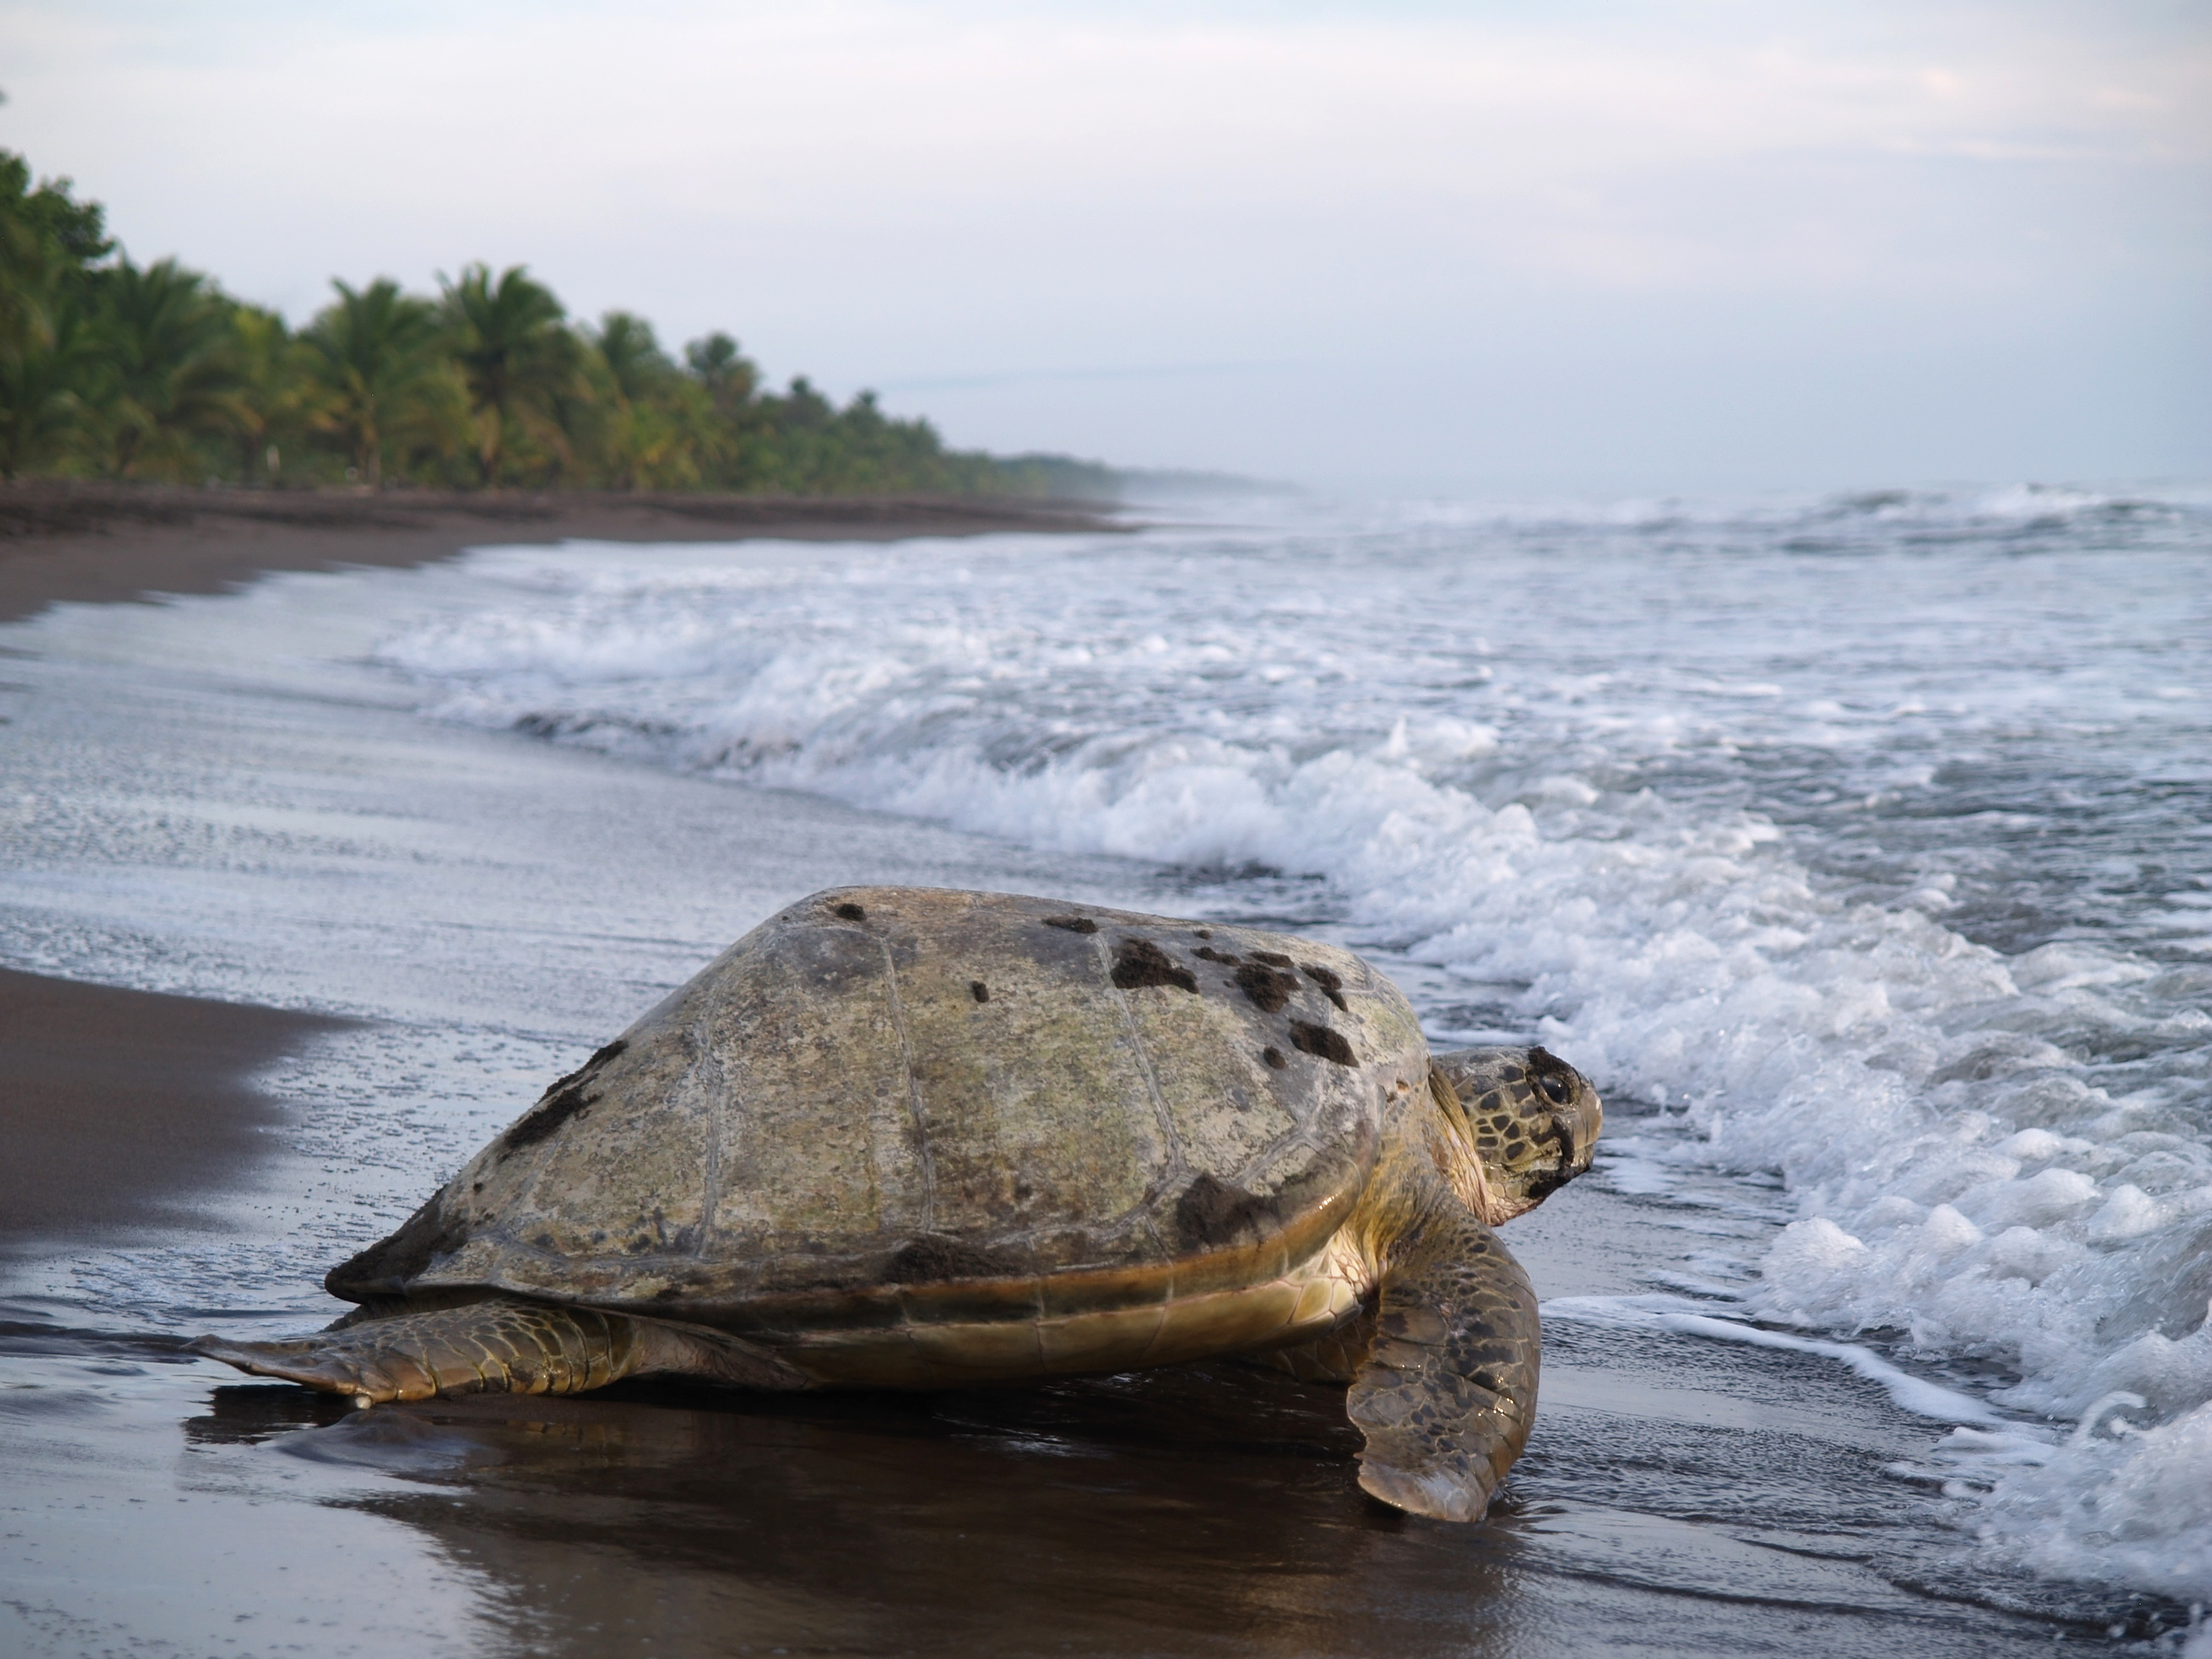 Costa Rica Sea Turtles: Where and when to see them